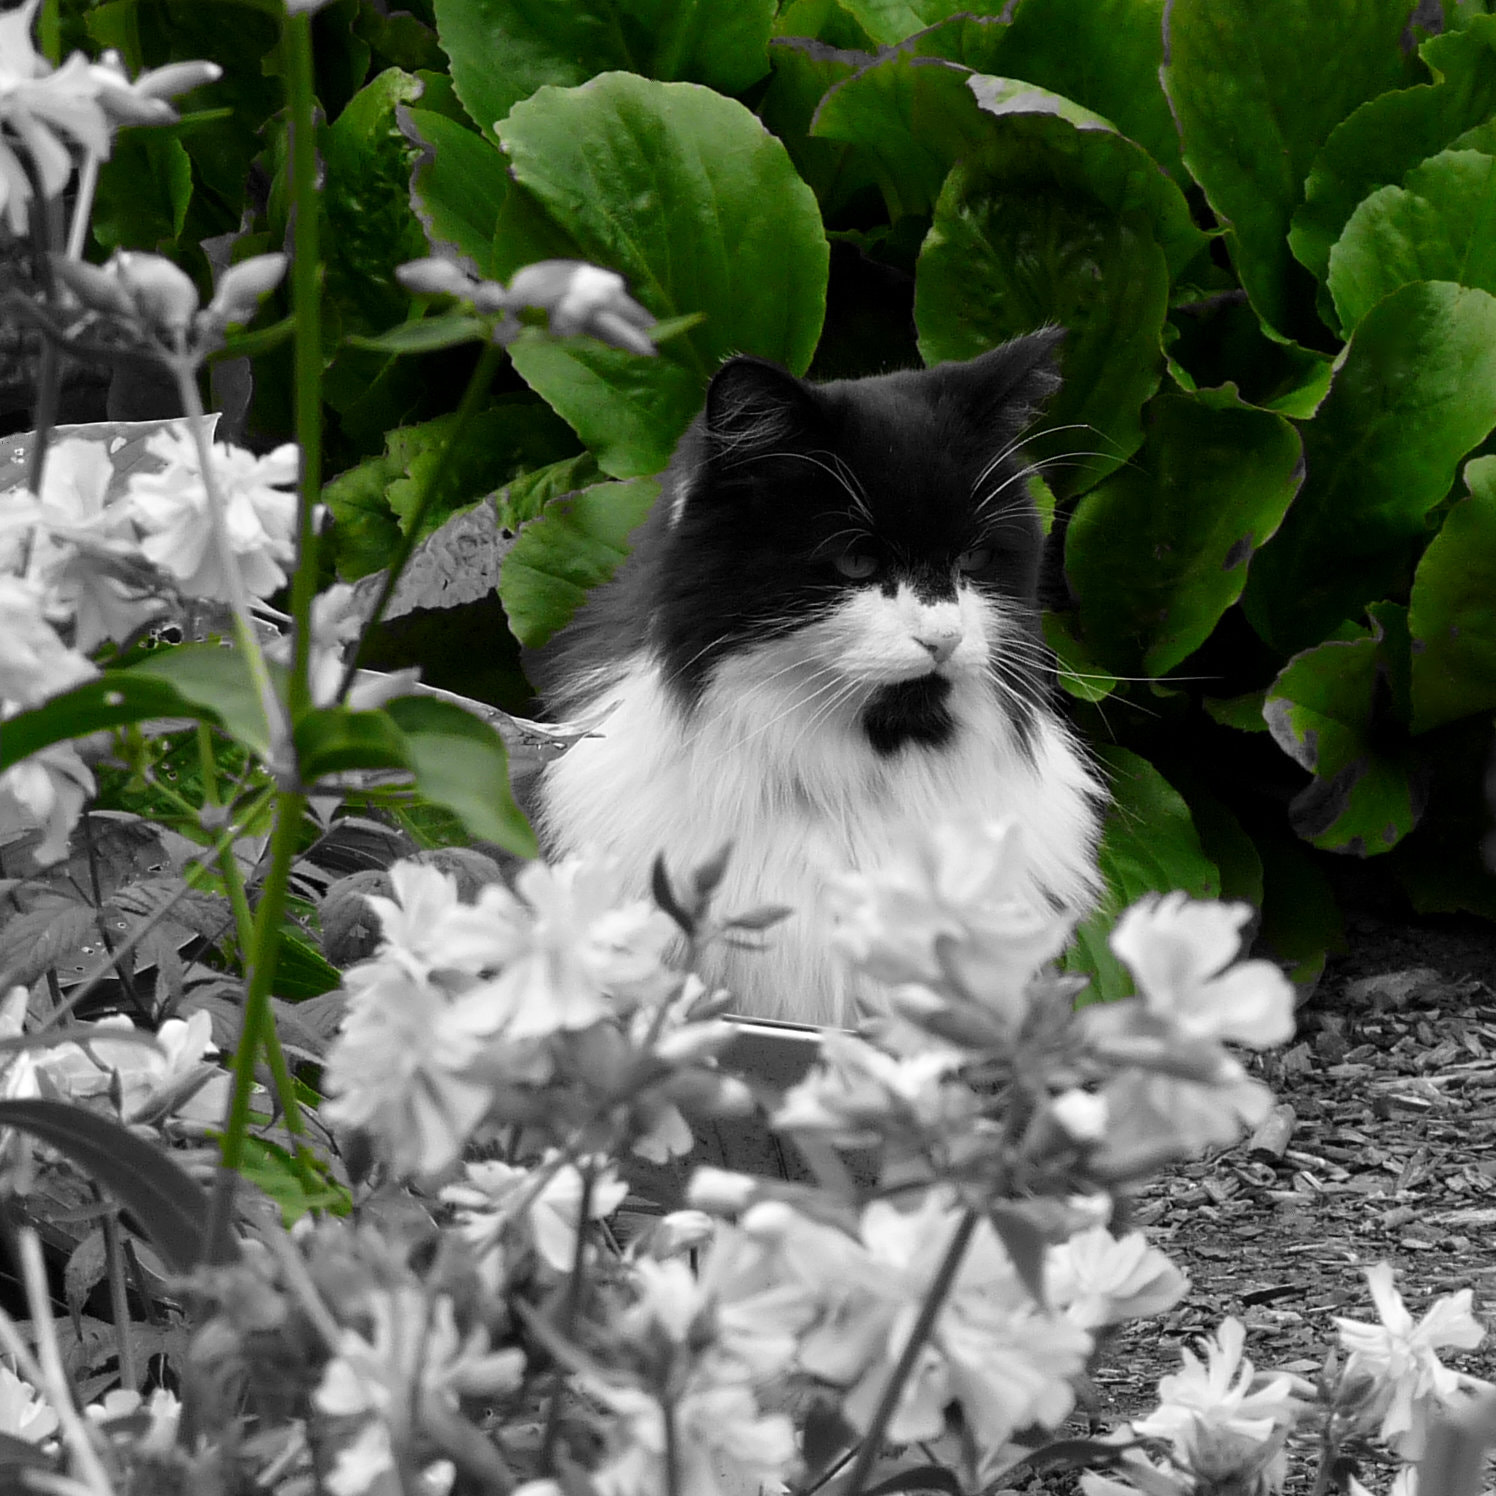 Photograph The cat in the Botanical gardens by Päivi Kaarina on 500px